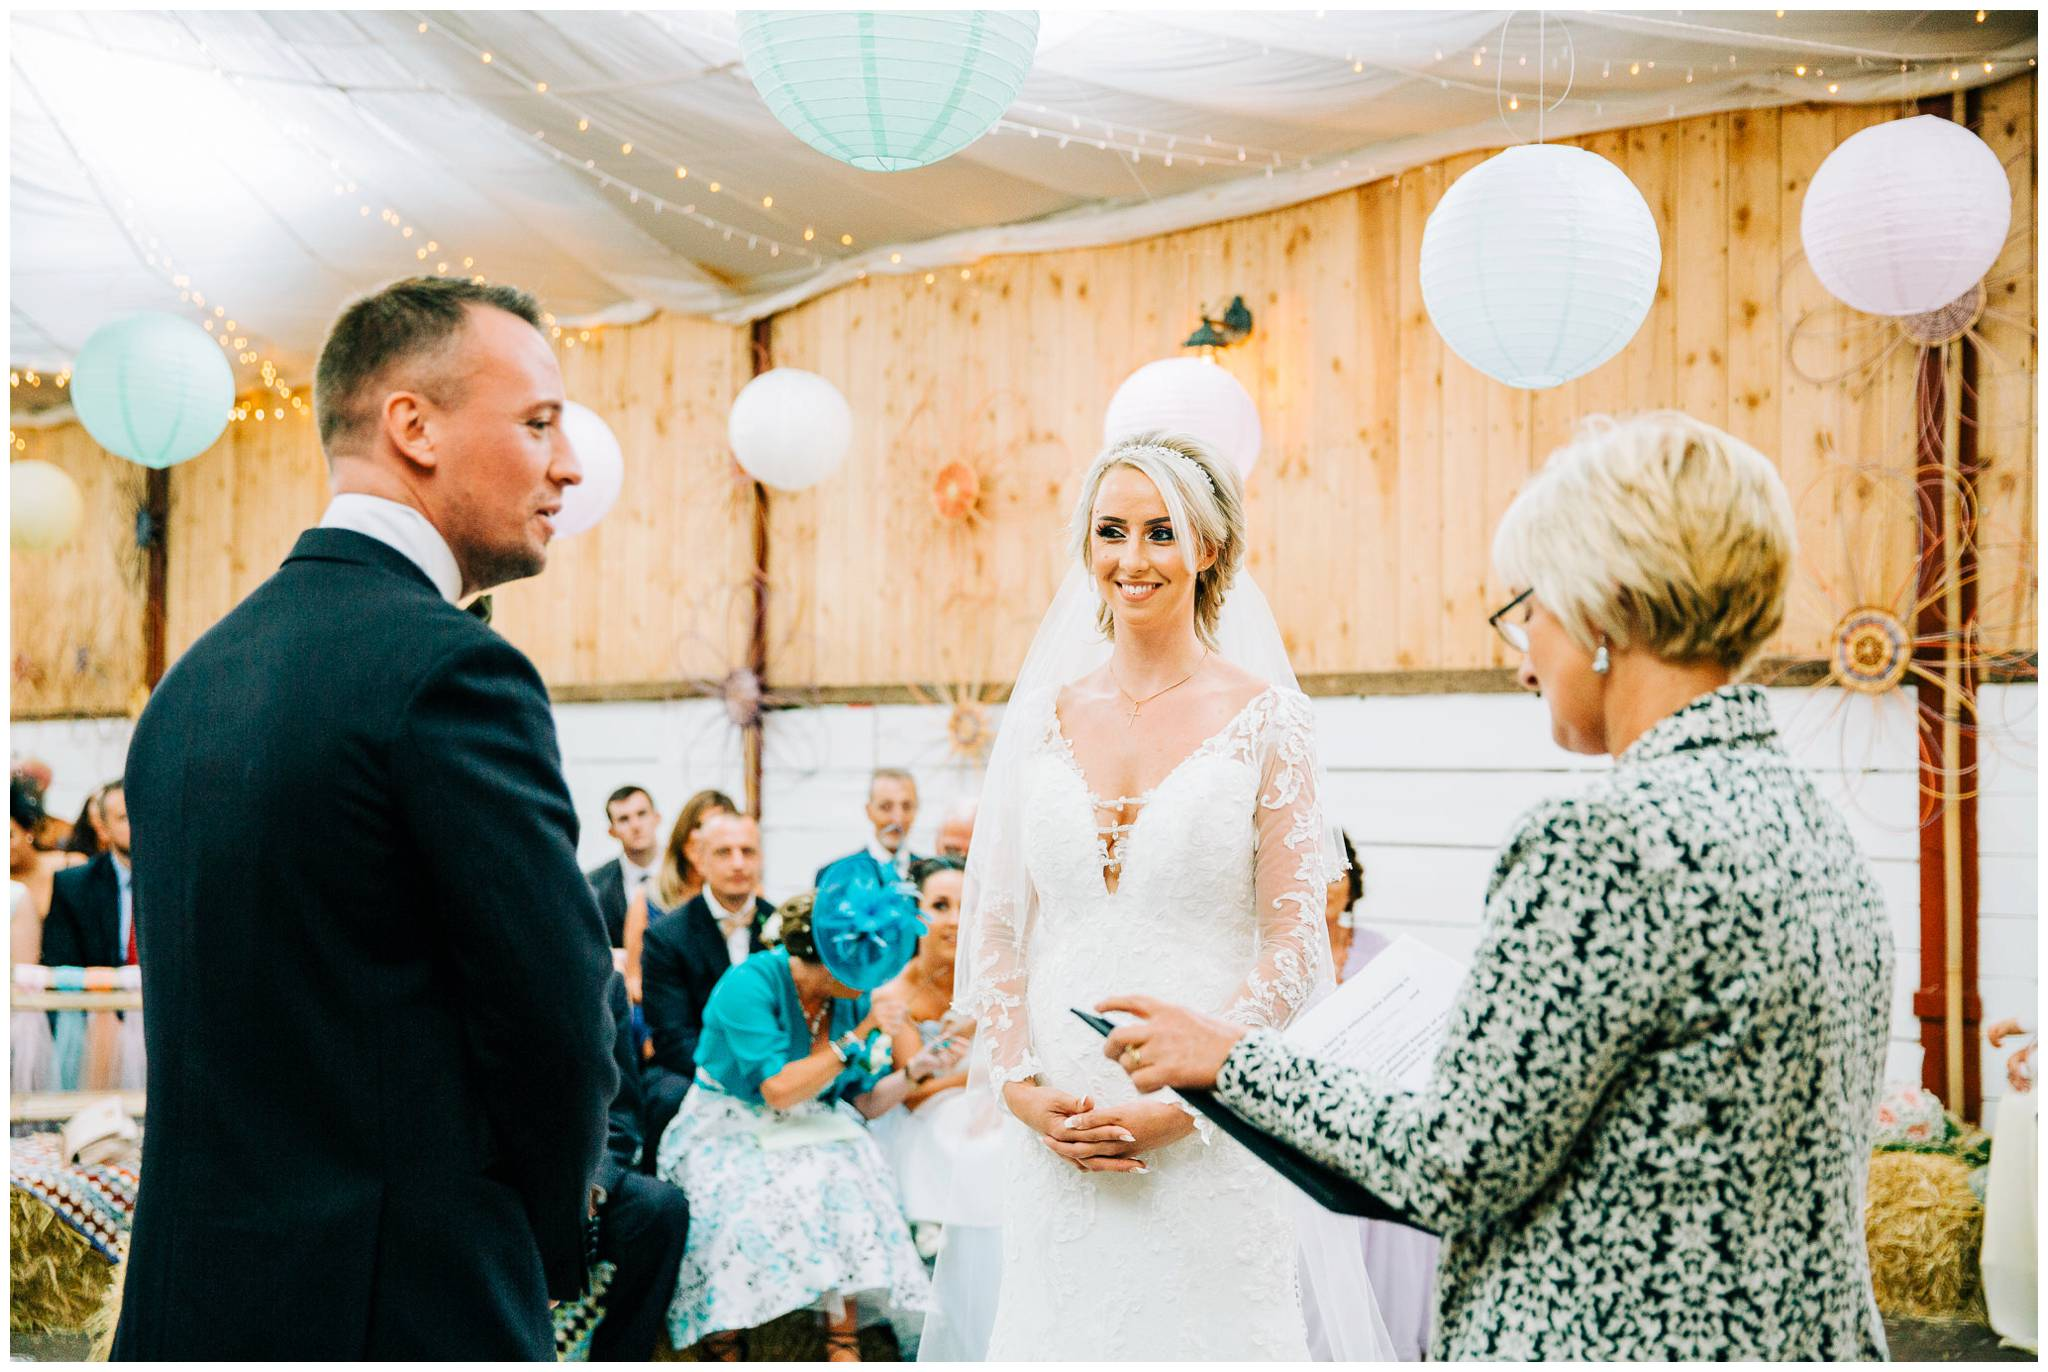 Festival wedding at Wellbeing Farm  - Bolton Wedding Photographer_0021.jpg